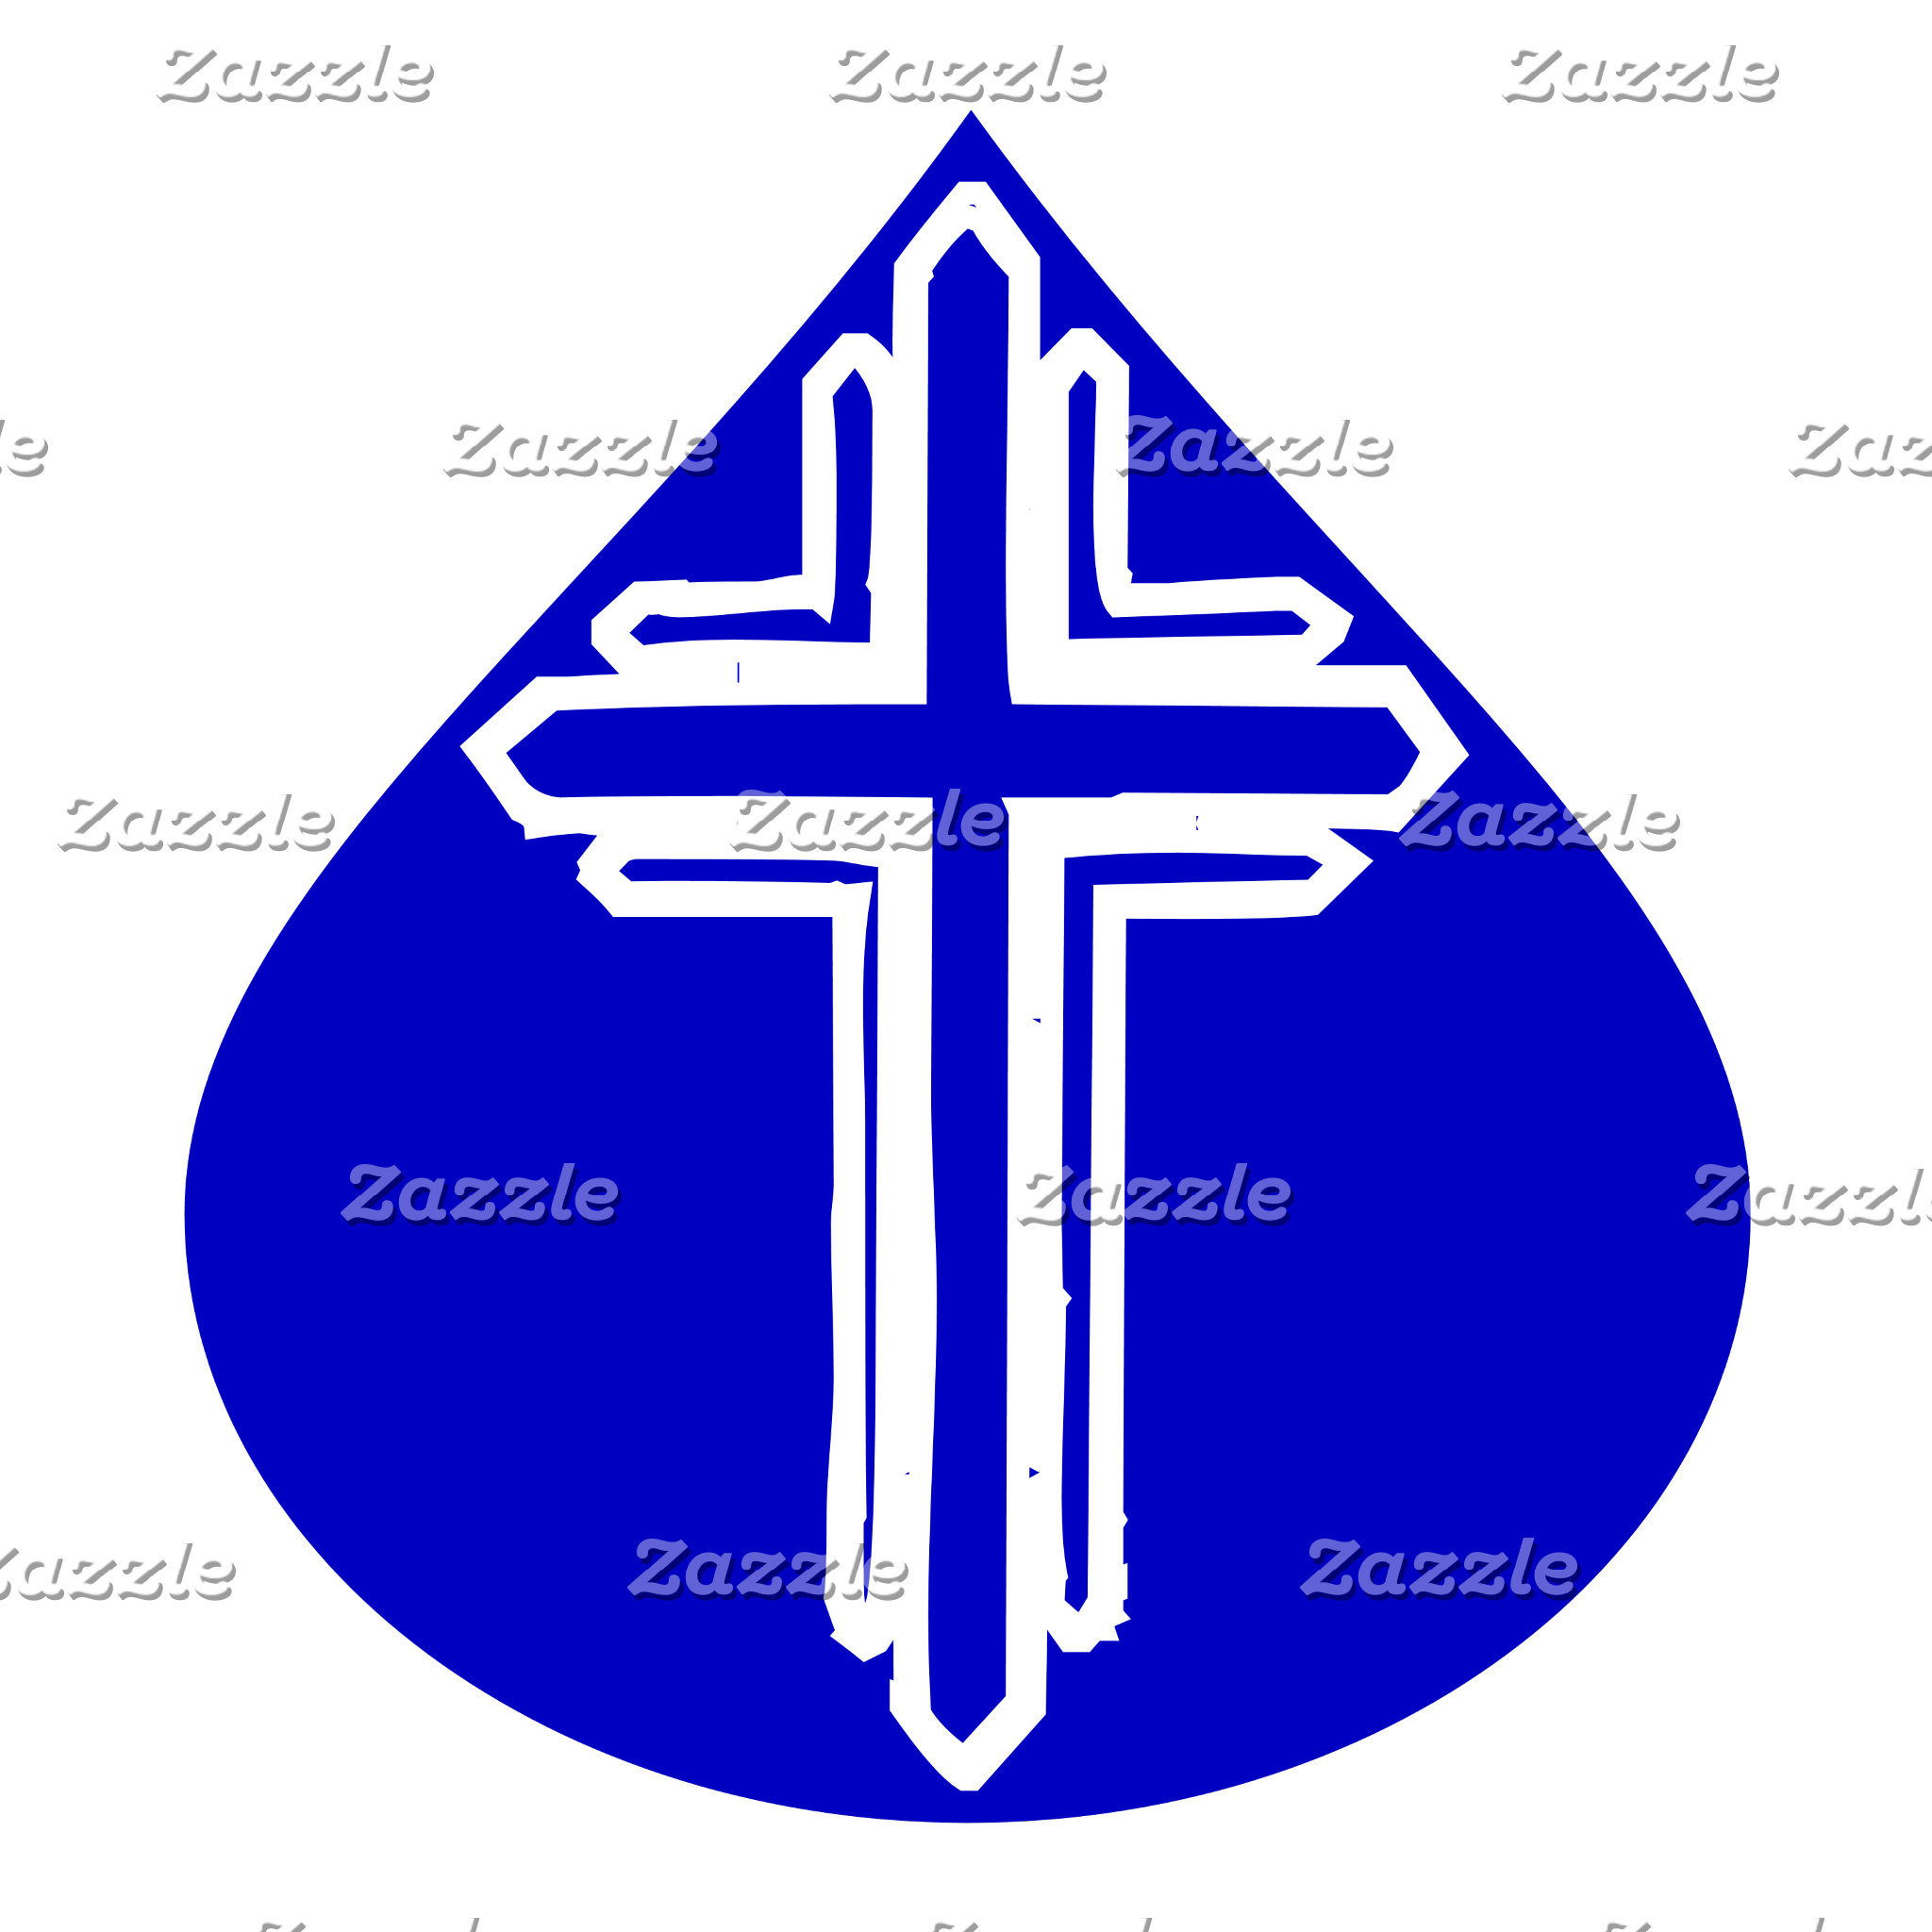 White Cross in Blue Teardrop